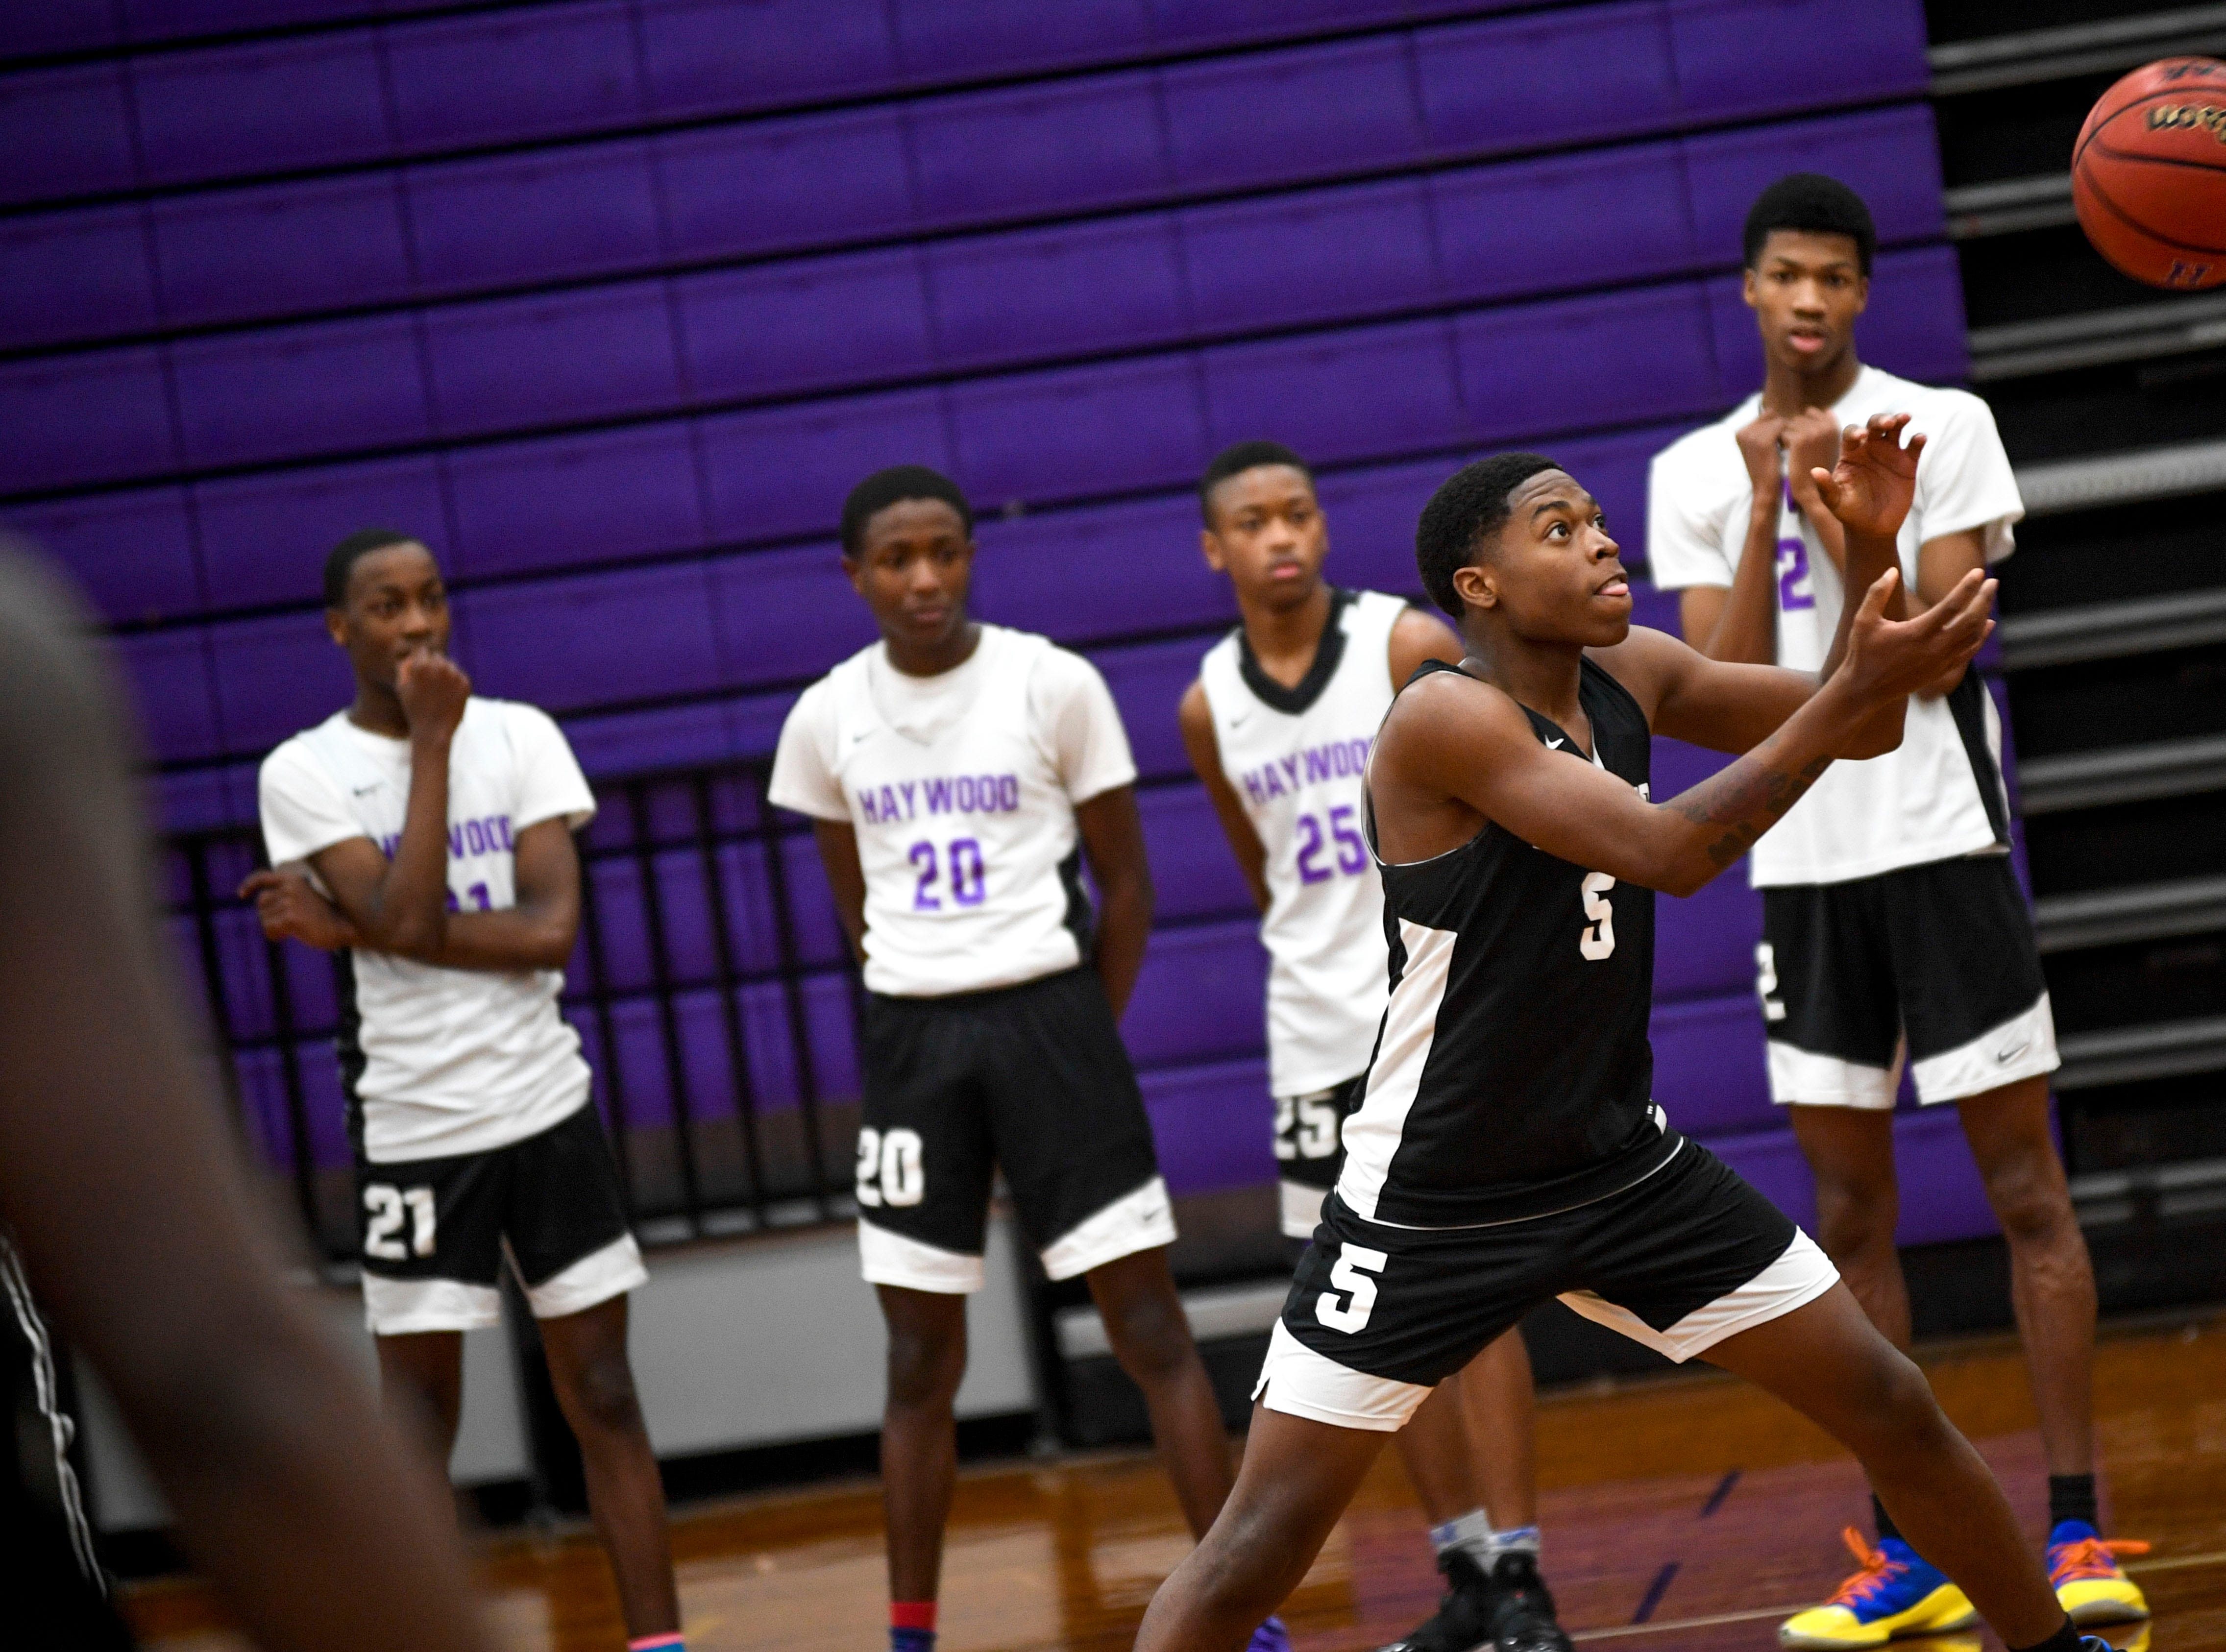 Kyron Stocking reaches to catch a pass in a drill during basketball practice at Haywood High School in Brownsville, Tenn., on Wednesday, Jan. 2, 2019.